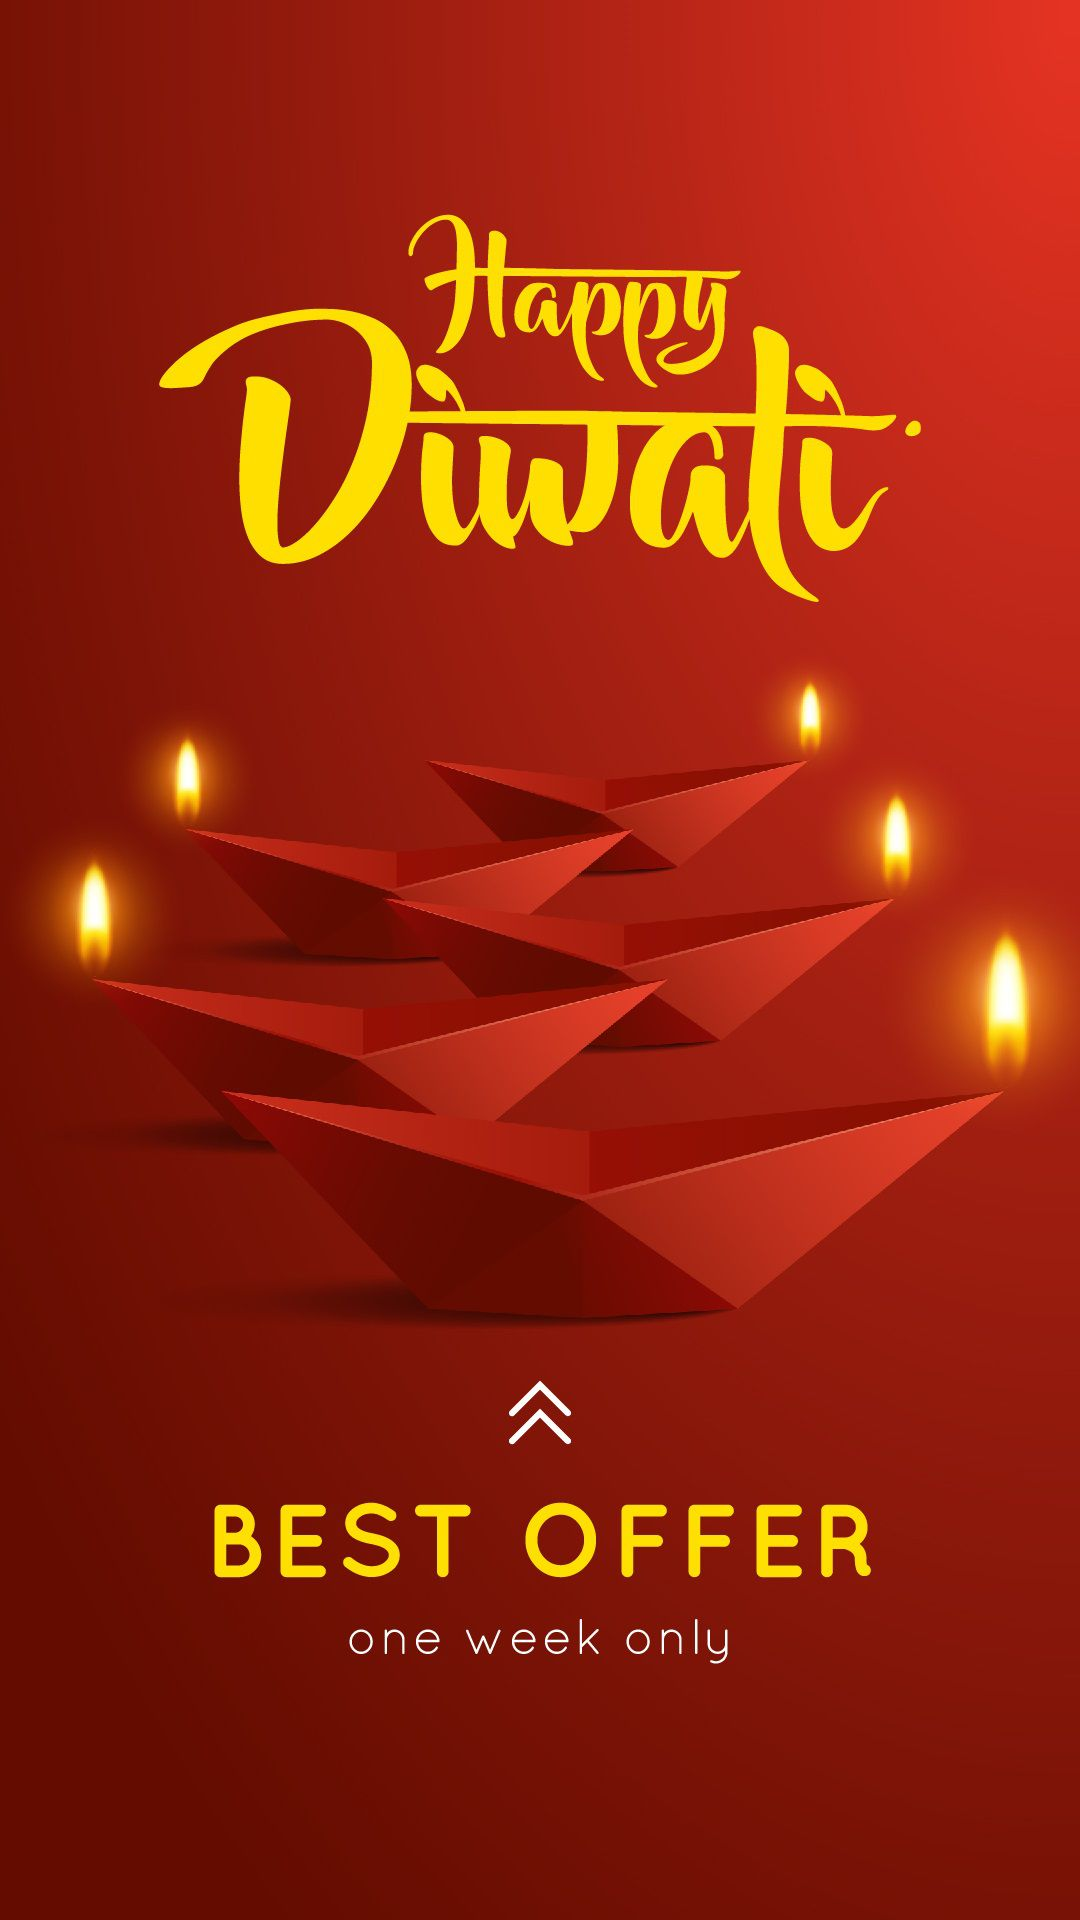 008 Archaicawful Diwali Party Invite Template Free High Resolution Full